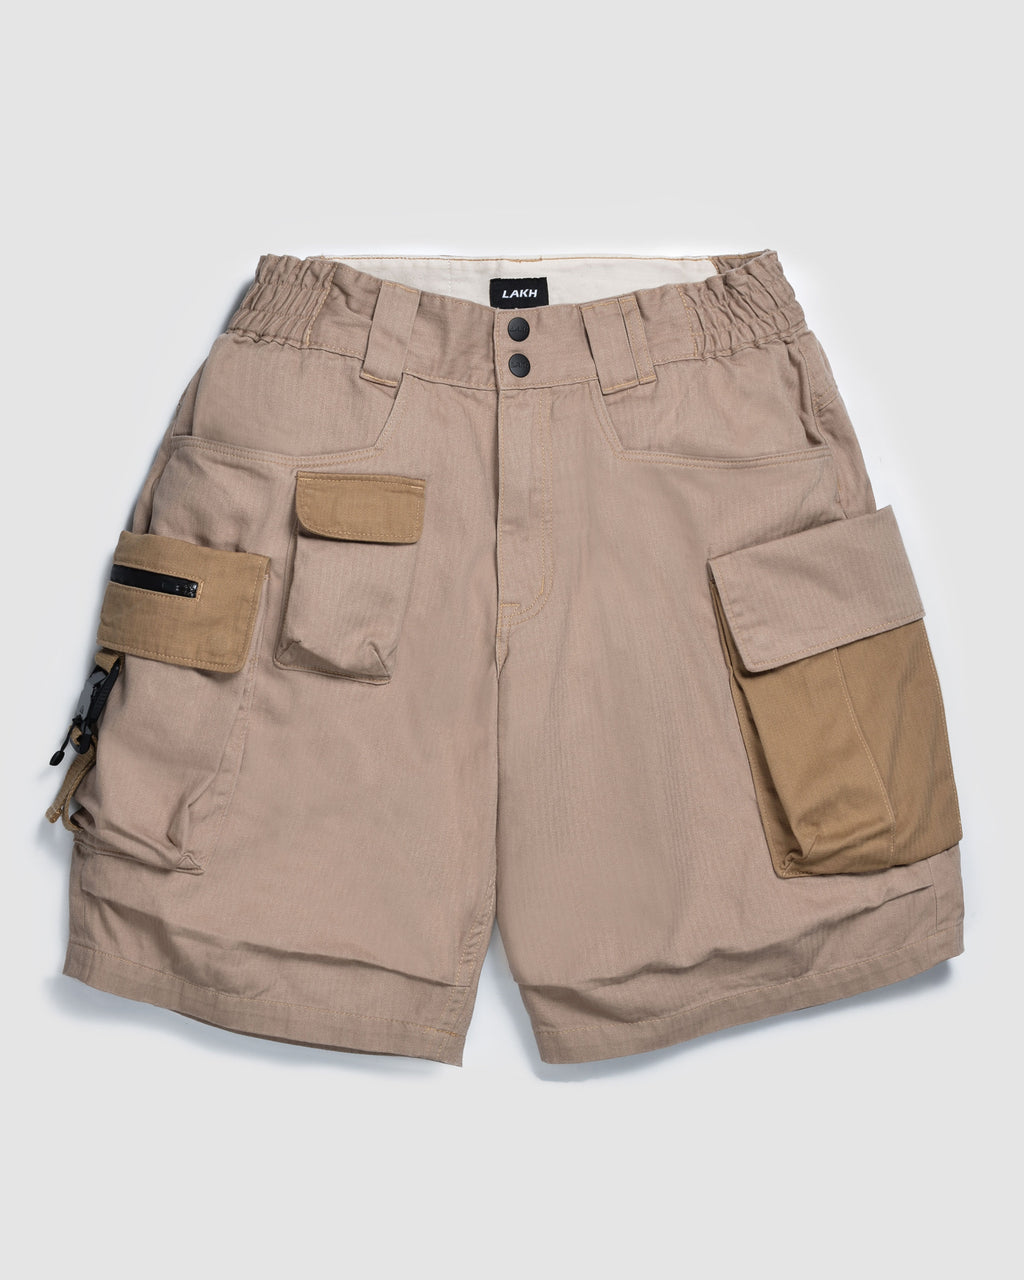 LAKH with HUSKY Ten Pockets Cargo Shorts